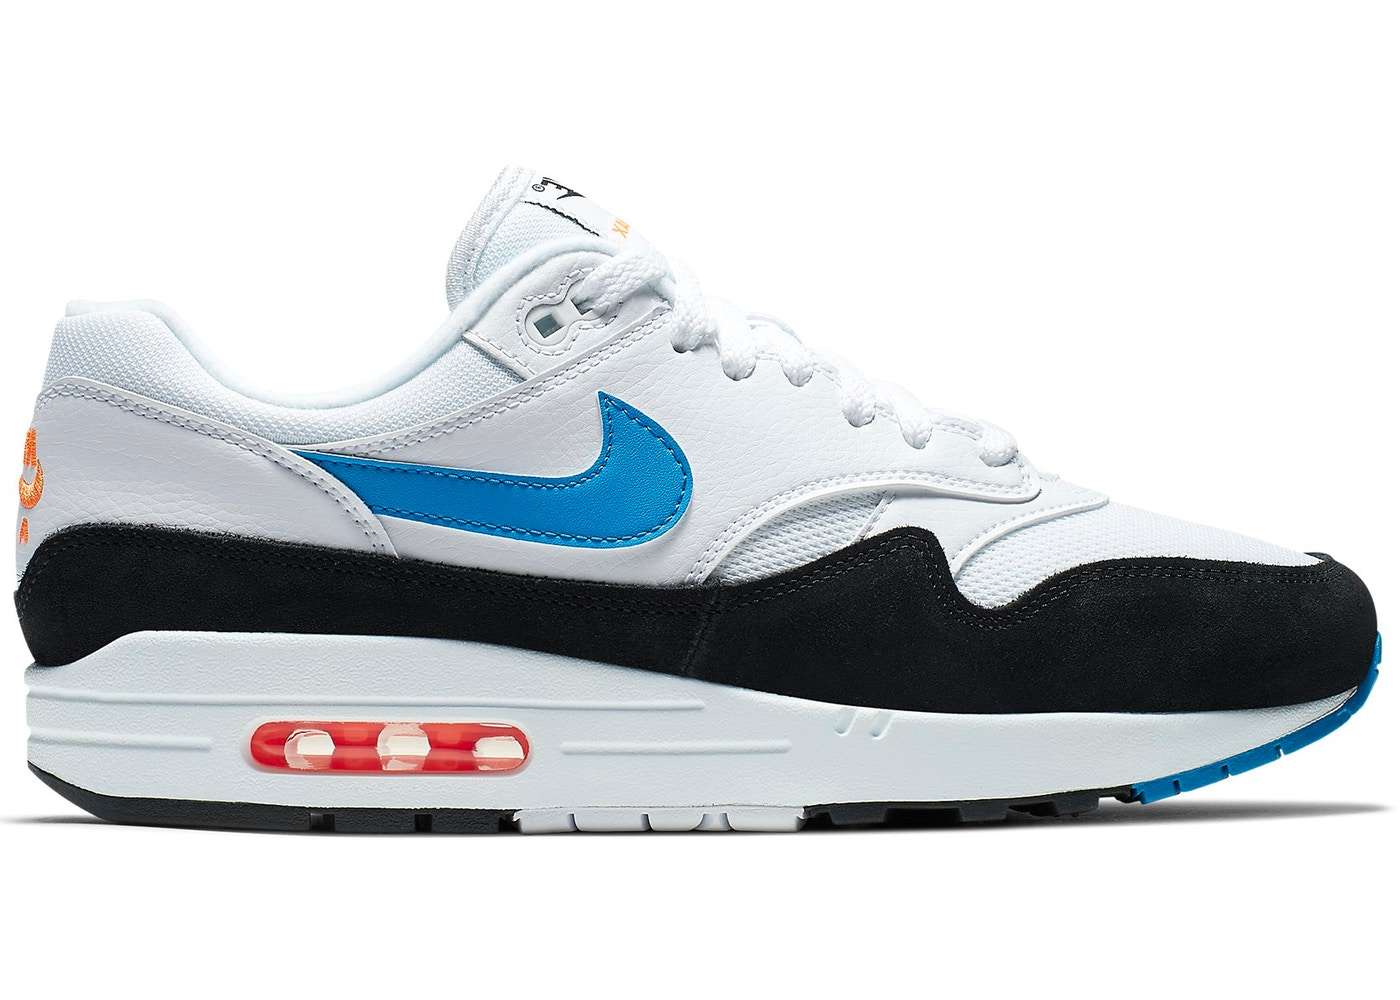 size 40 31613 7e241 Nike Air Max Shoes - New Highest Bids